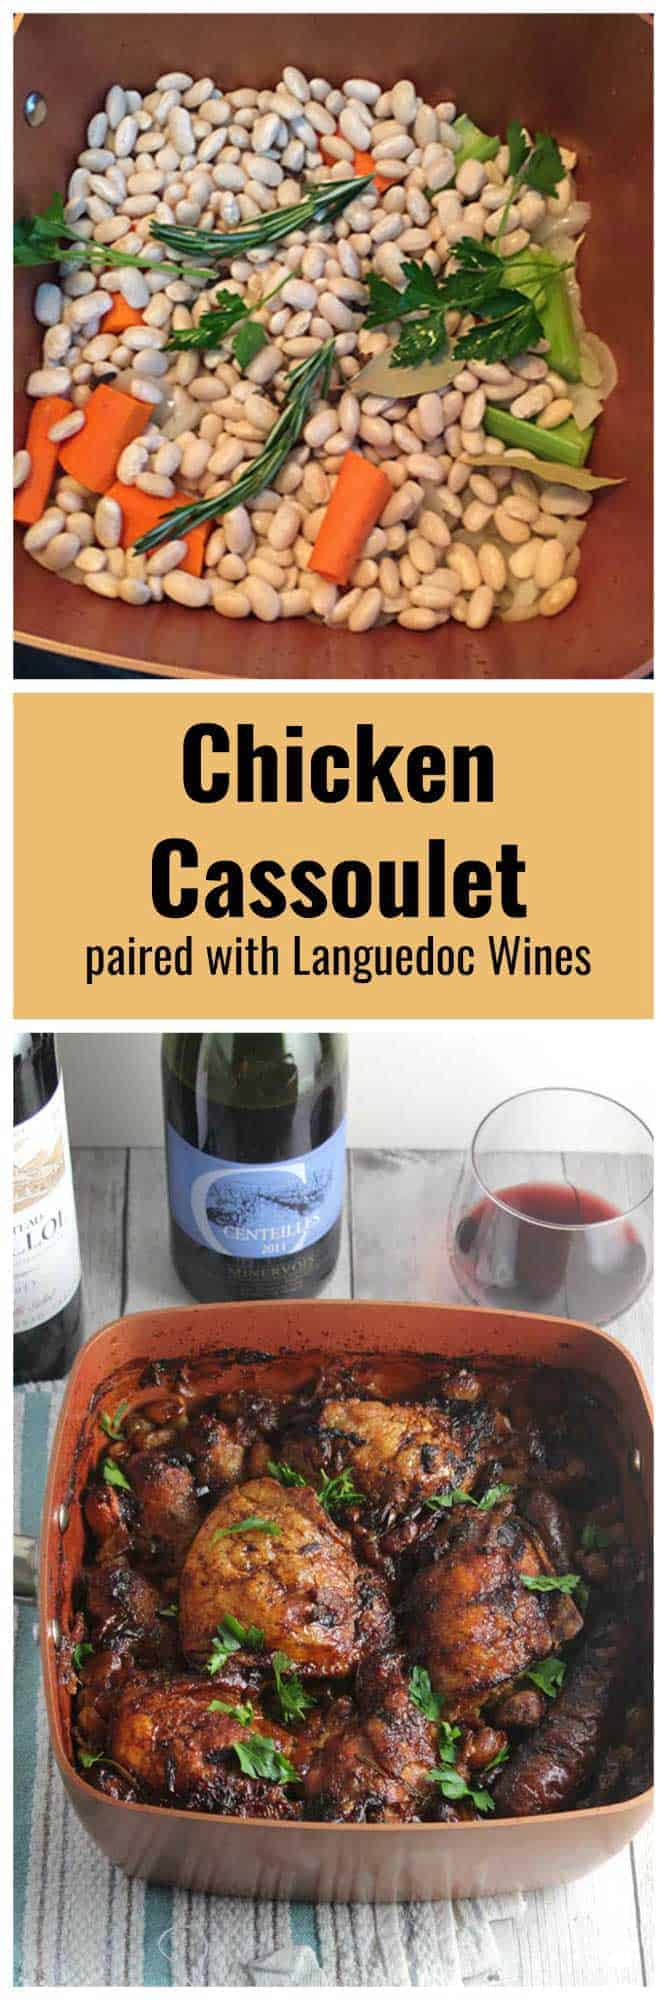 Chicken Cassoulet, slowly cooked with bacon and beans, is classic French comfort food. Excellent paired with red wine from the Languedoc region. #cassoulet #winepairing #Languedoc #sponsored